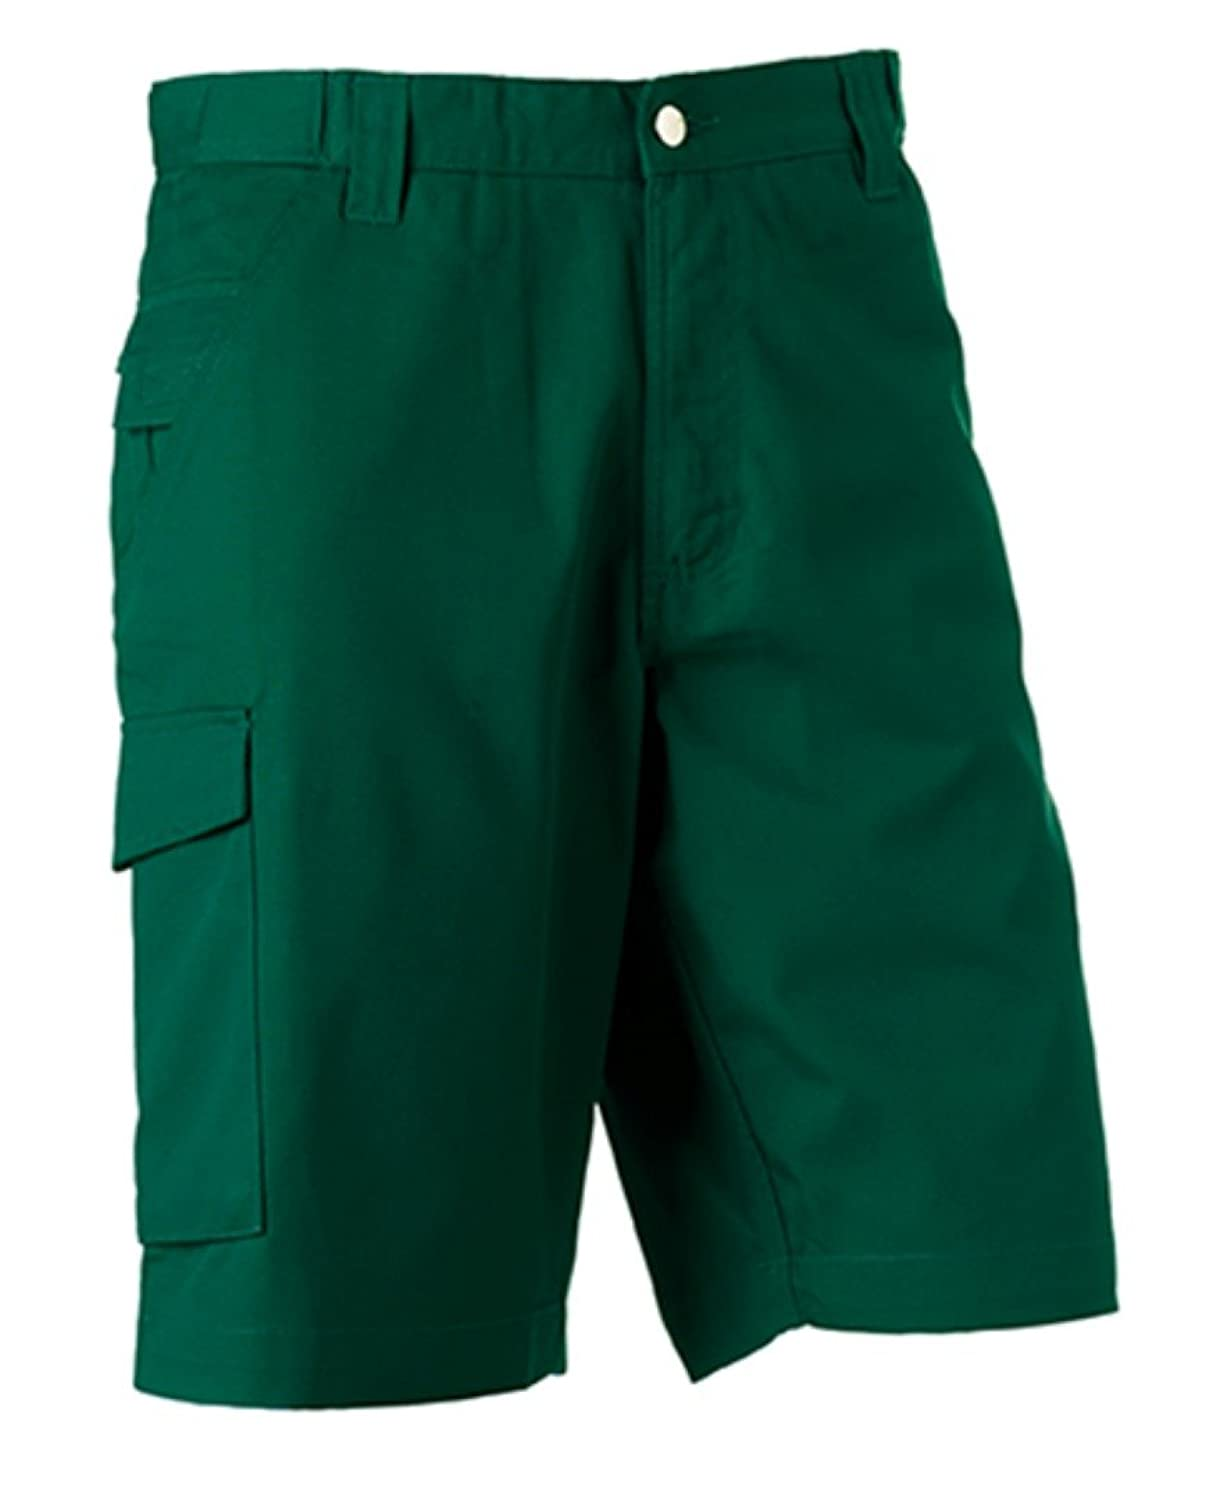 Russell Workwear Work Shorts : Color - Bottle : Size - 30